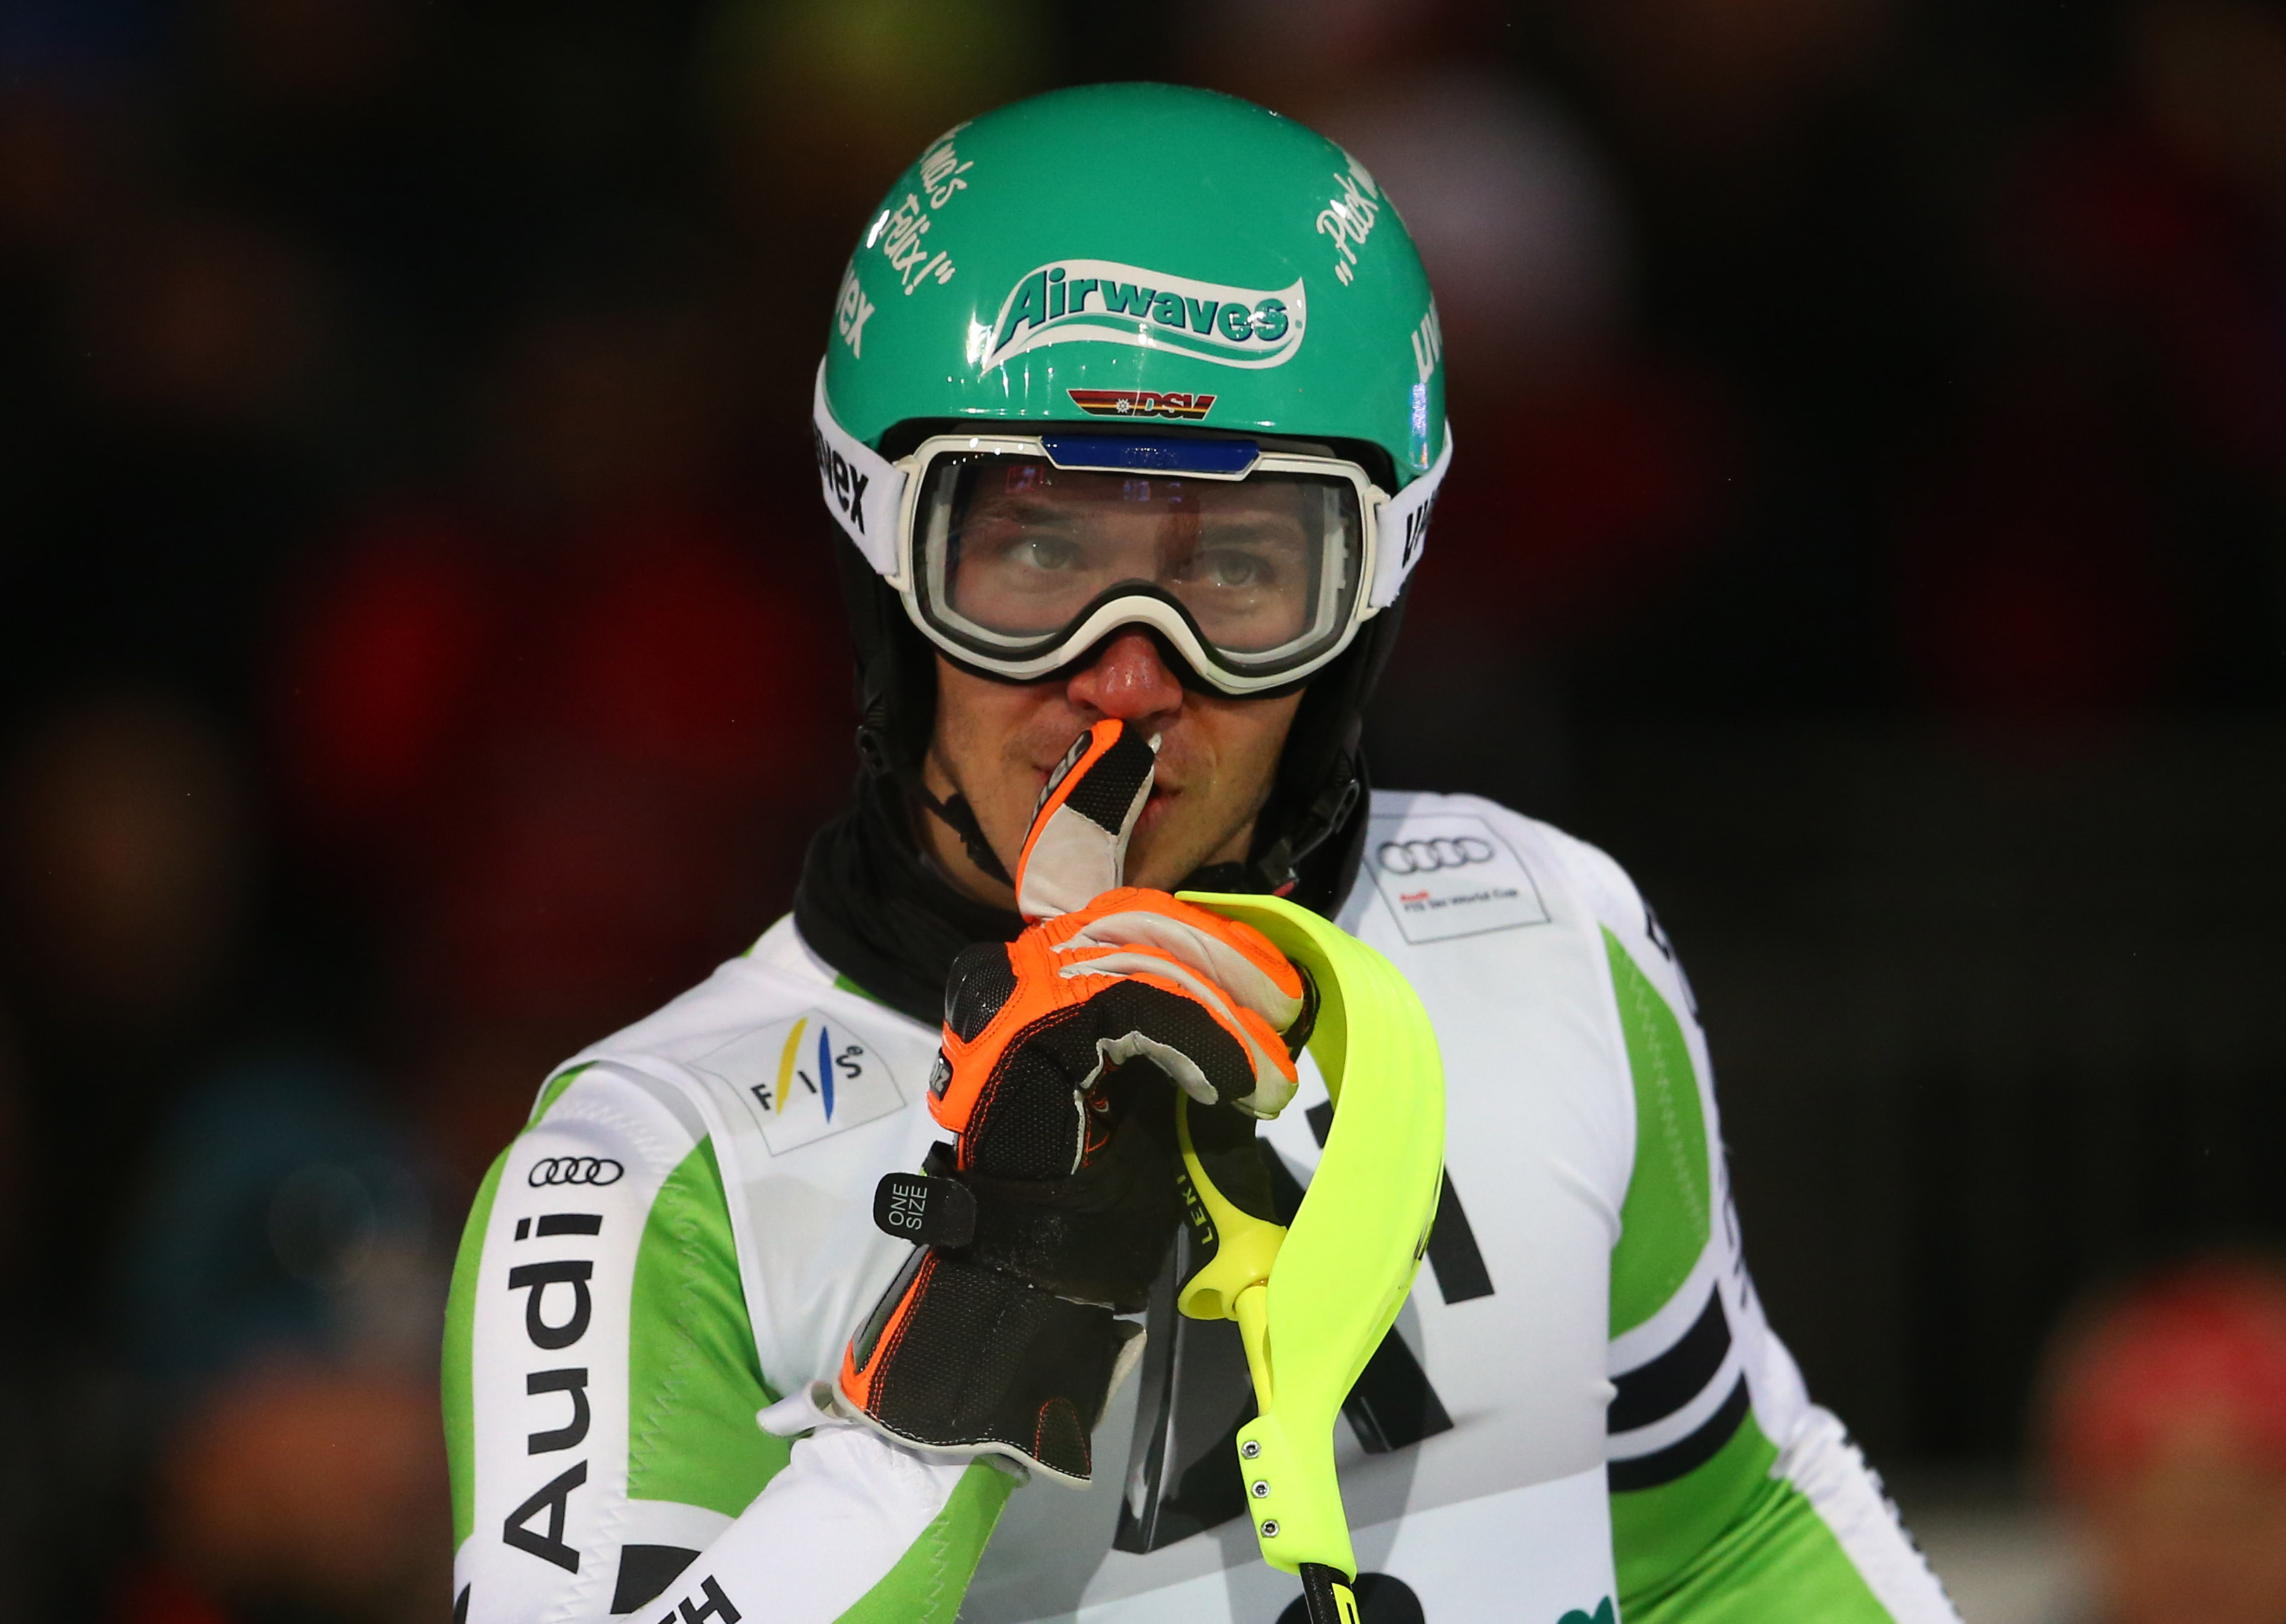 Third placed Felix Neureuther, of Germany, gestures at the finish area at the end of an alpine ski men's World Cup Night Slalom in Schladming, Austria, Tuesday, Jan. 28, 2014. (AP Photo/Giovanni Auletta)